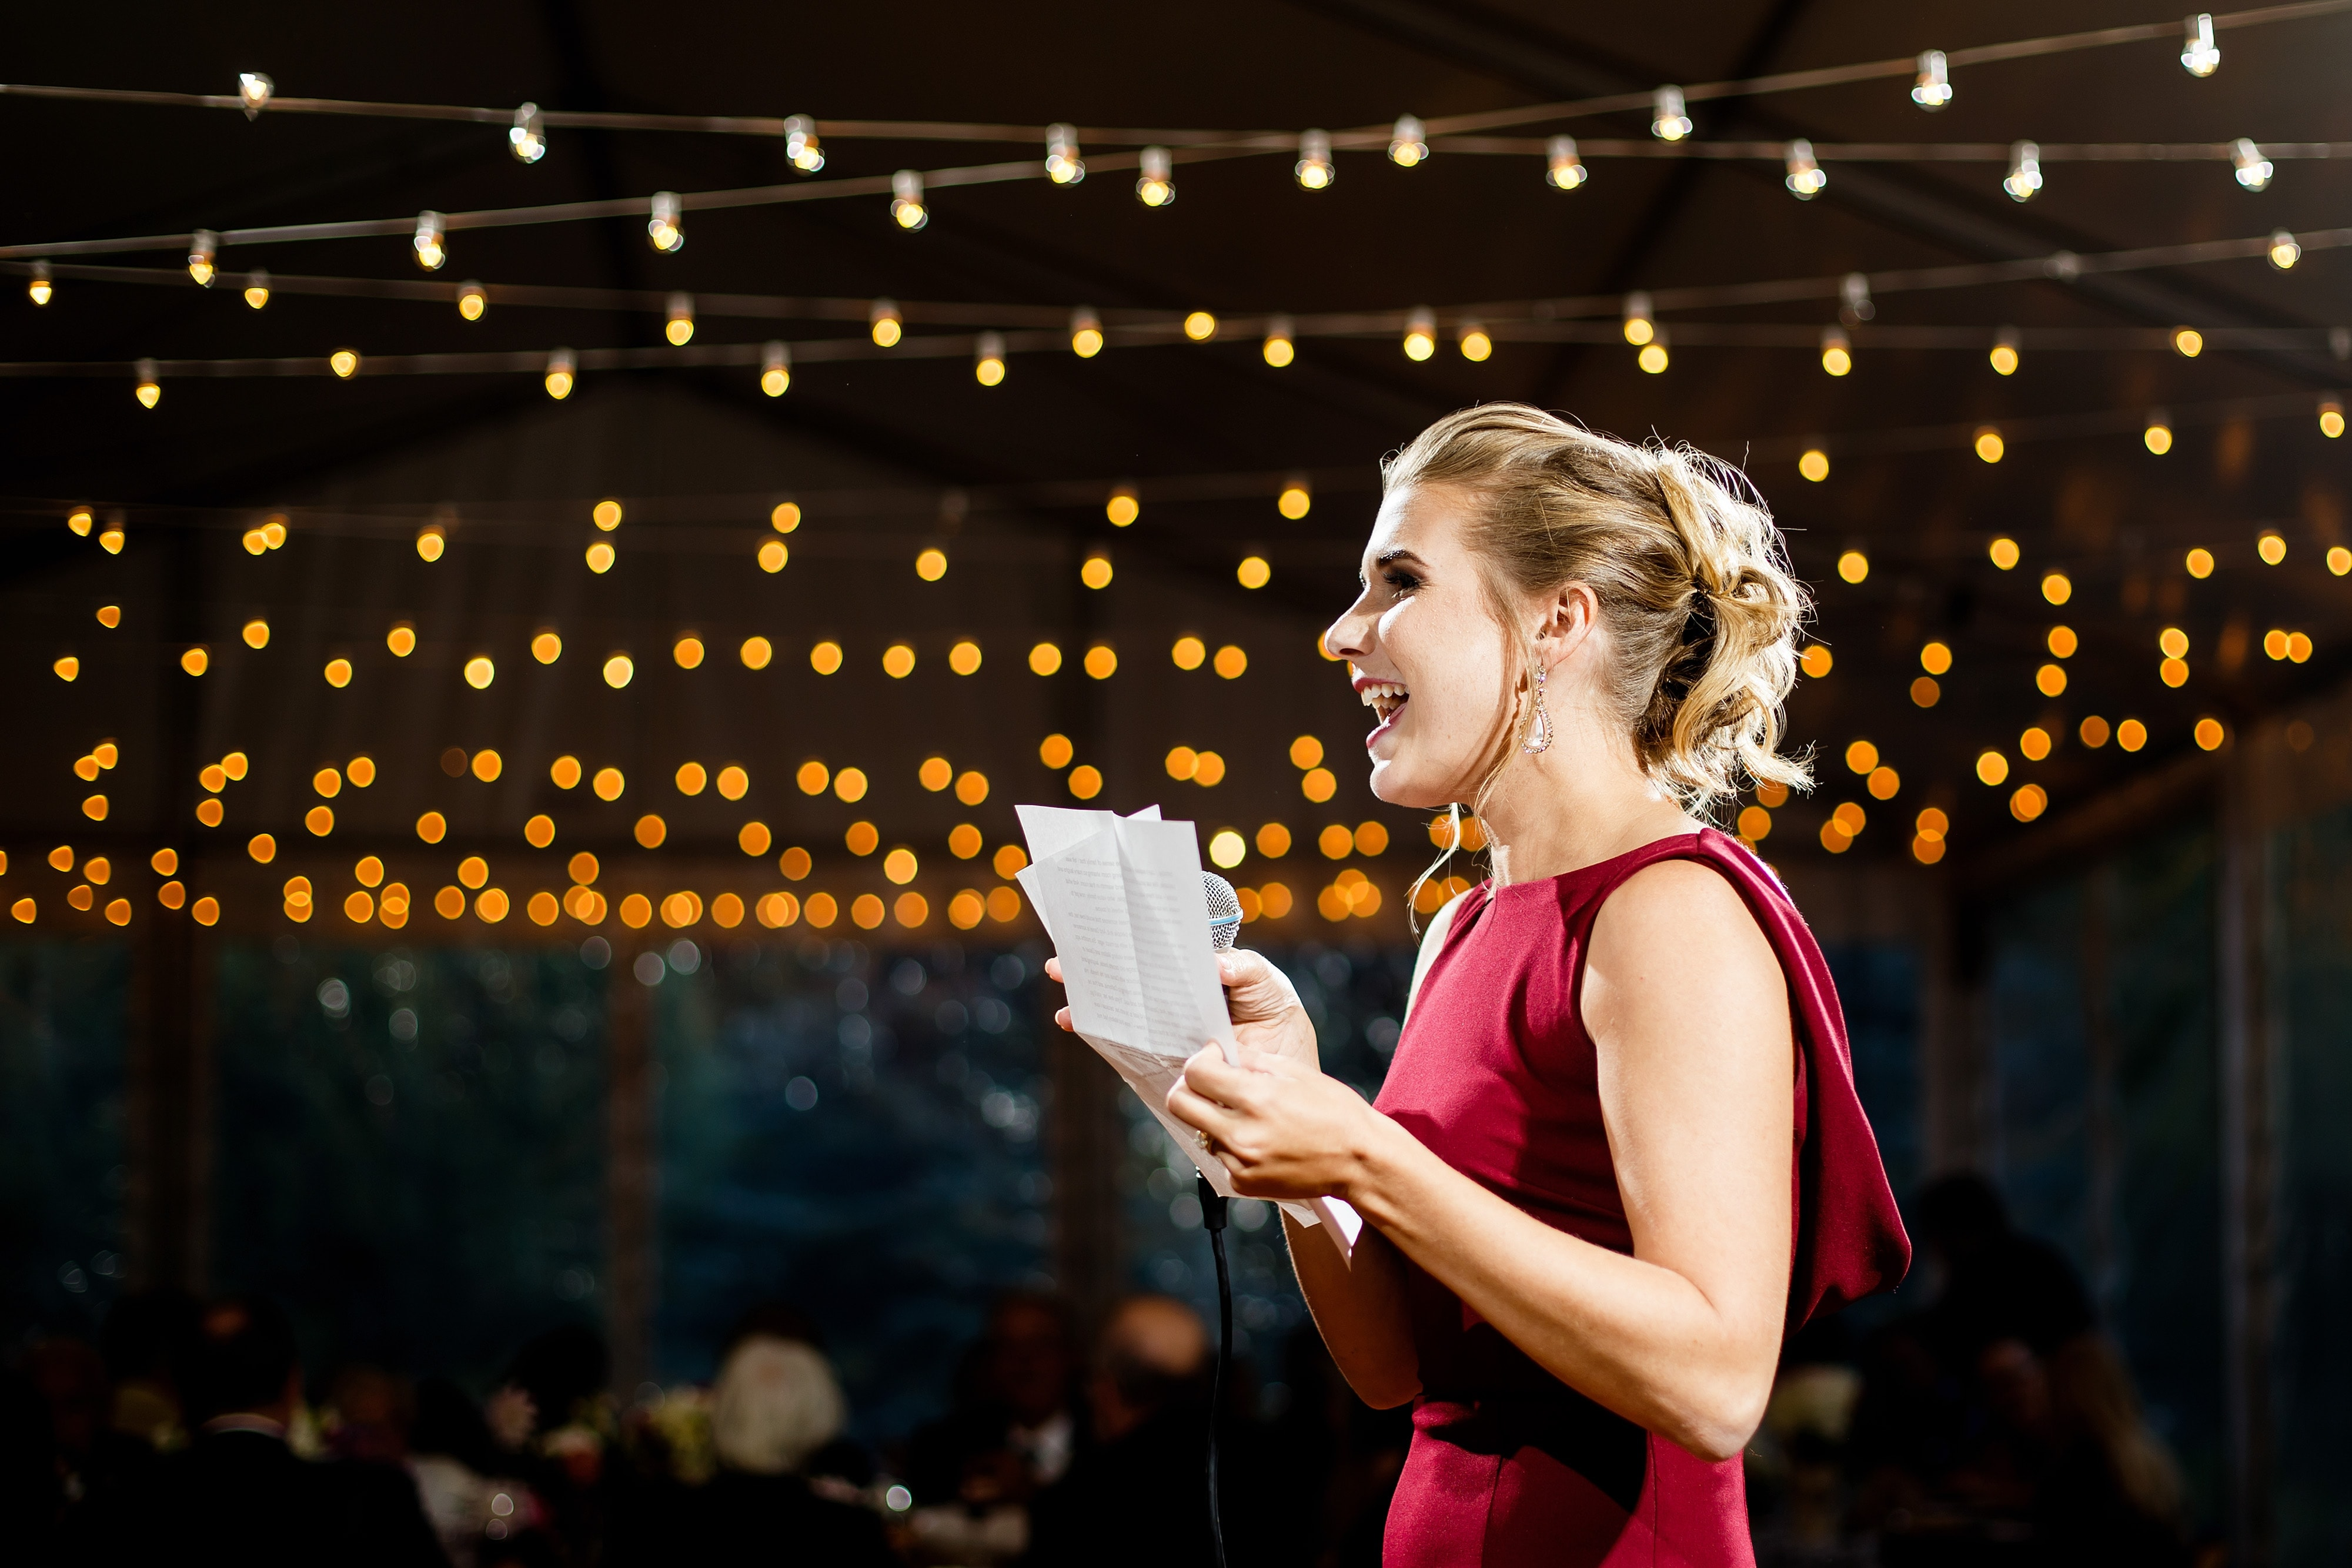 The sister of the bride gives a speech during the reception at Snowmass Cottages